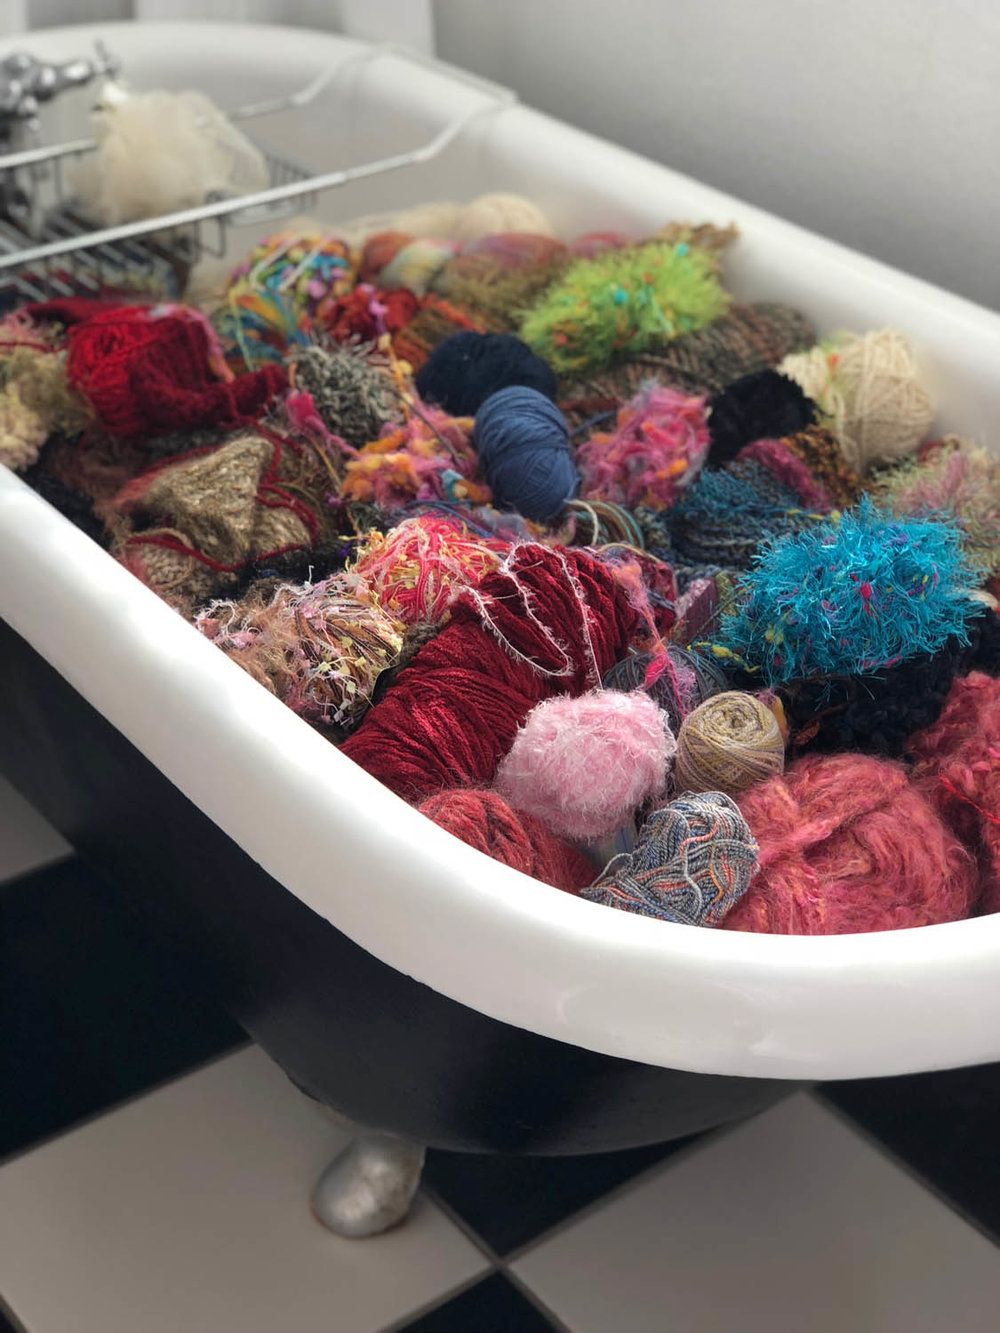 Claw-foot bath tub filled with colorful jewel toned balls of yarn